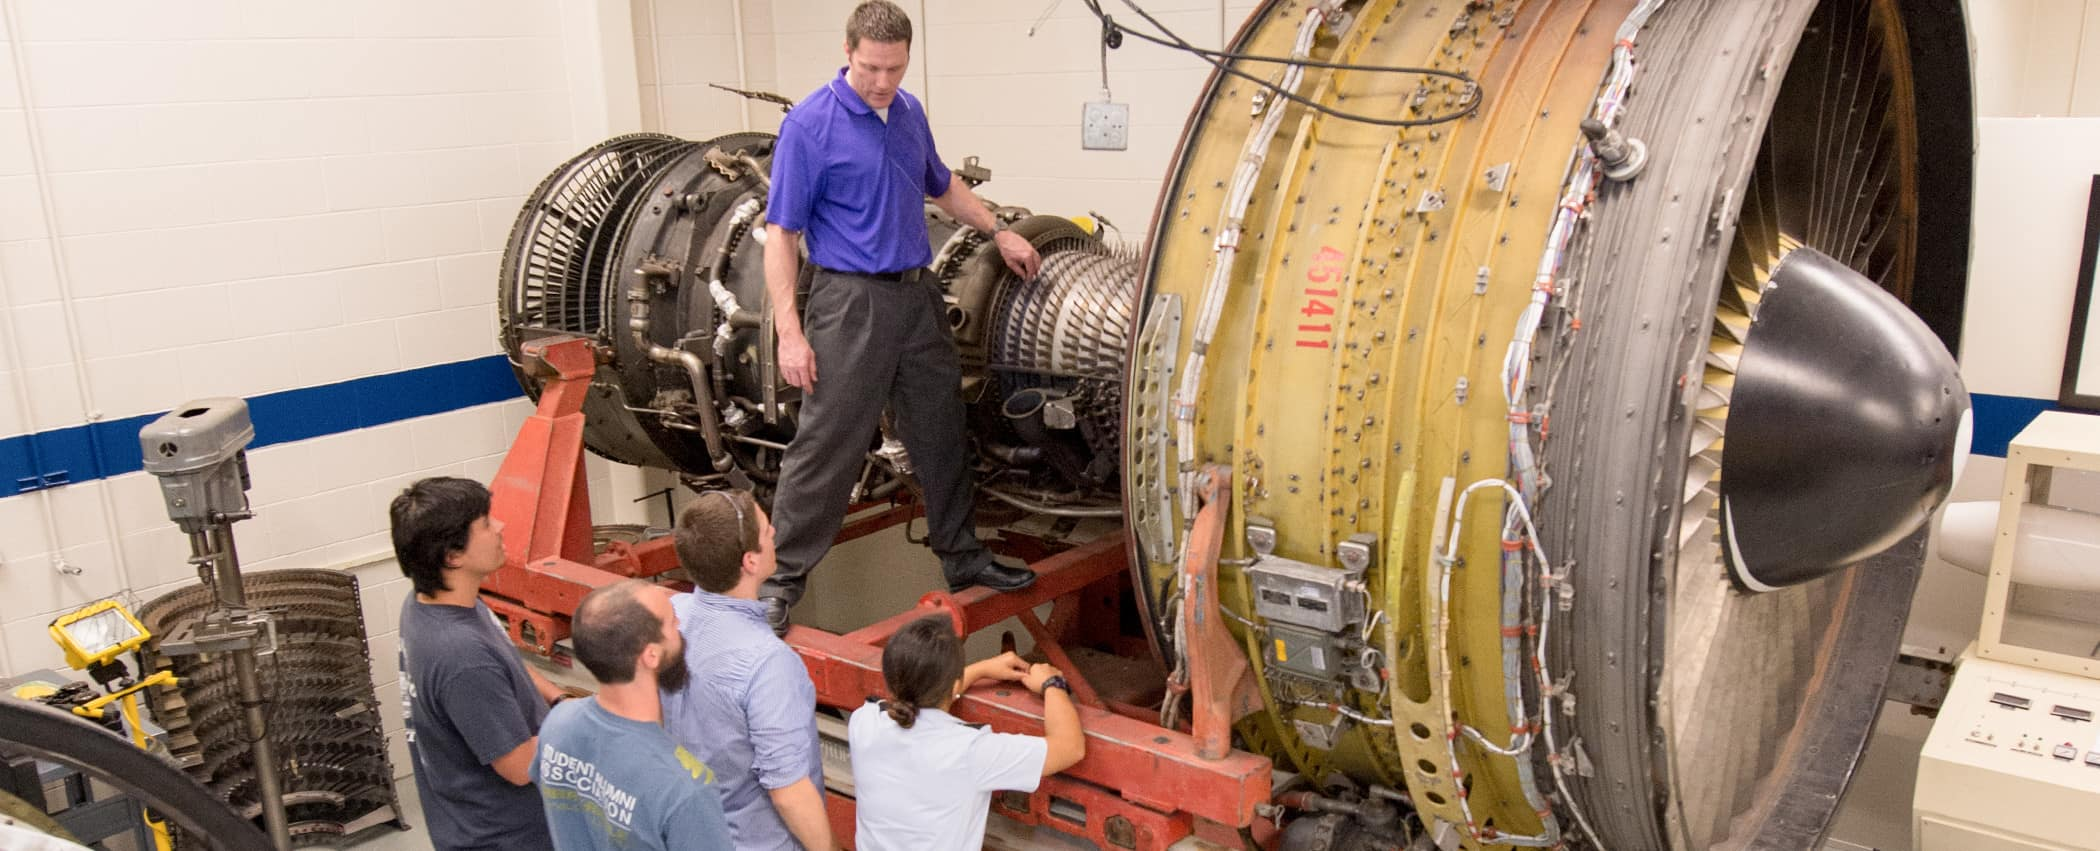 What is the difference between aeronautical and aerospace engineering?